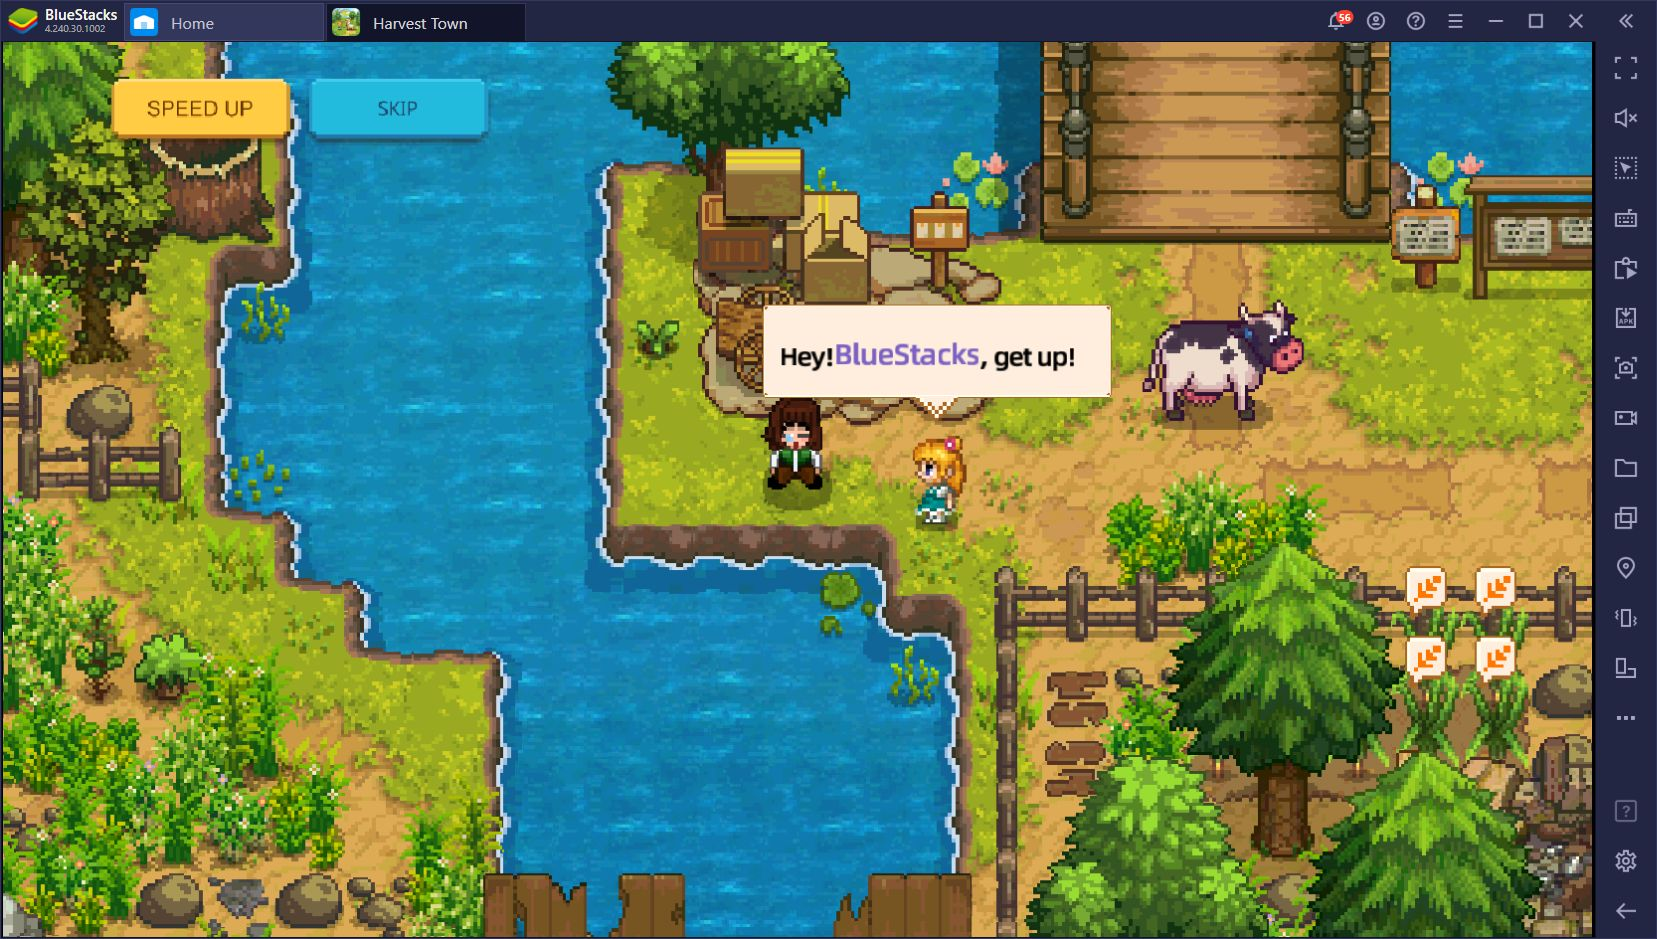 Harvest Town – How to Install and Play This Mobile Farming Game on PC